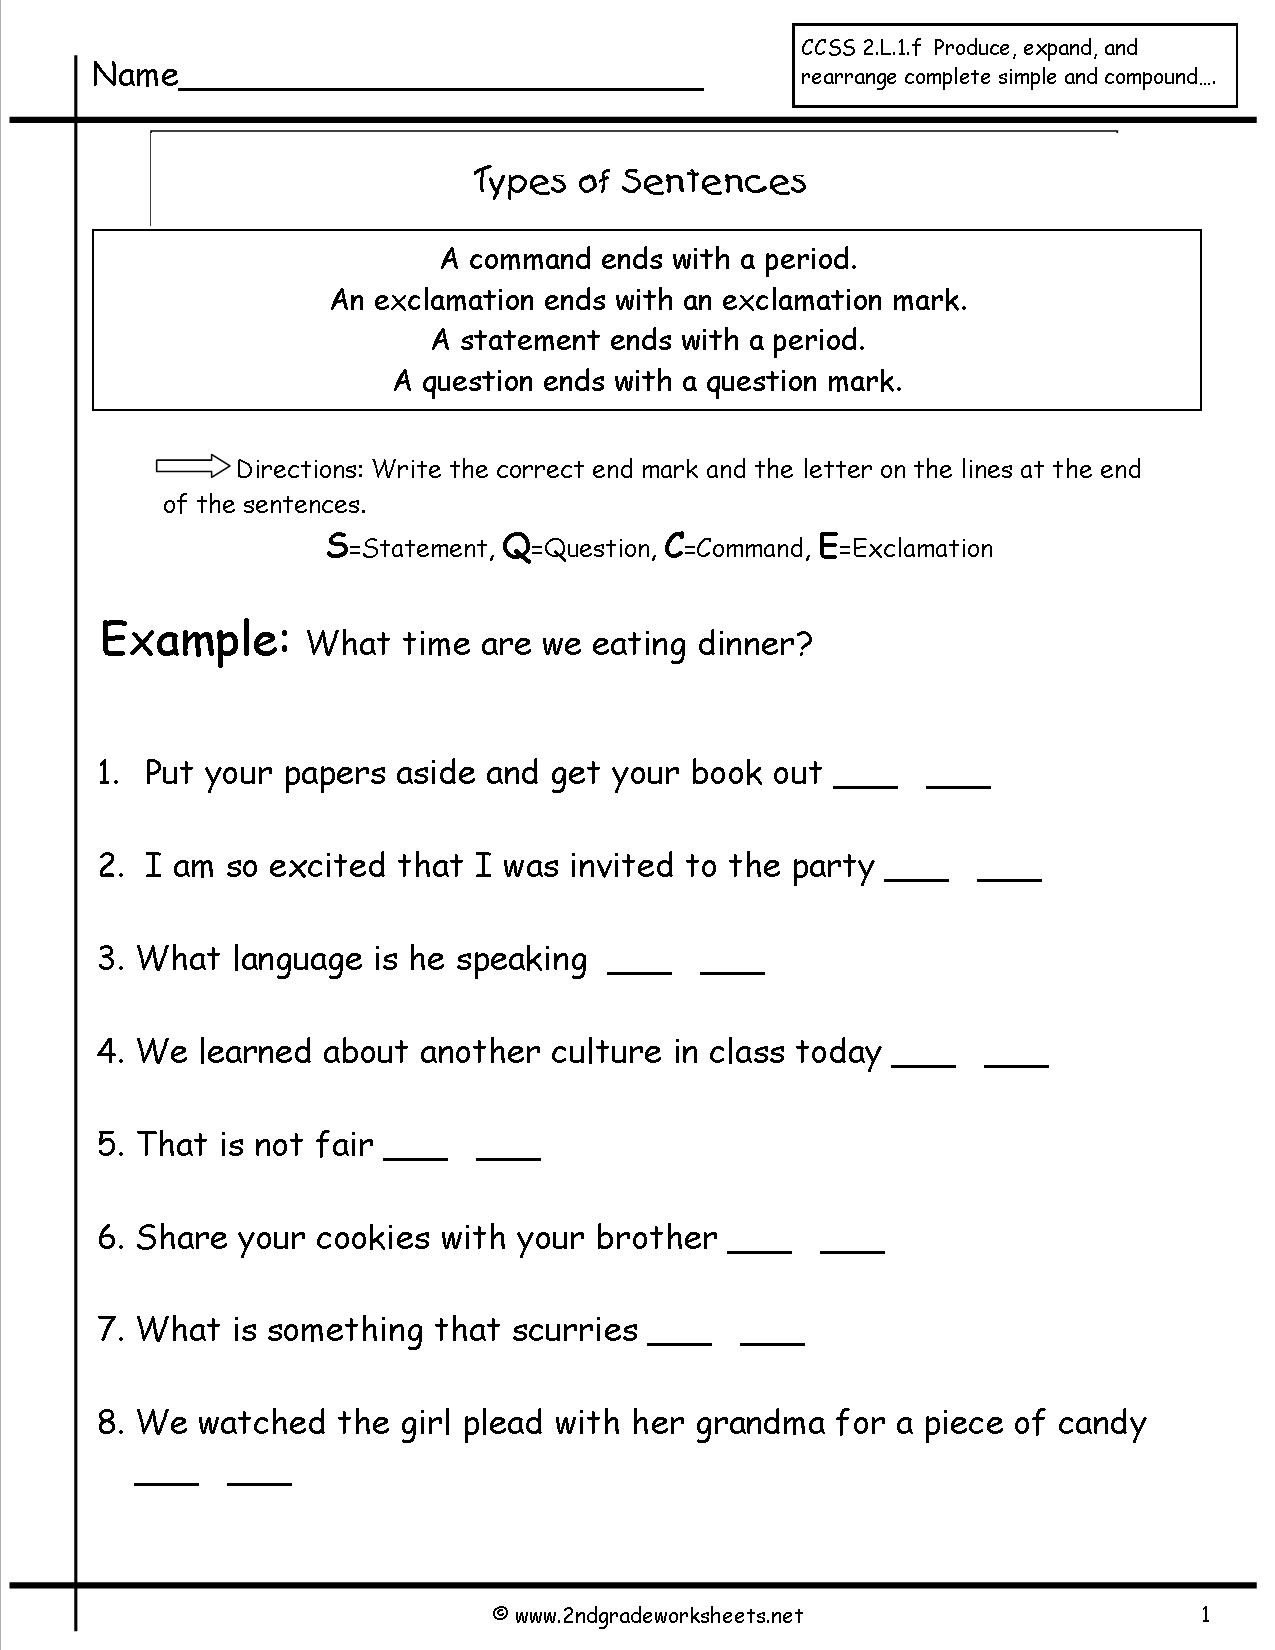 Combining Sentences Worksheets 5th Grade Plex Sentence Worksheets 5th Grade